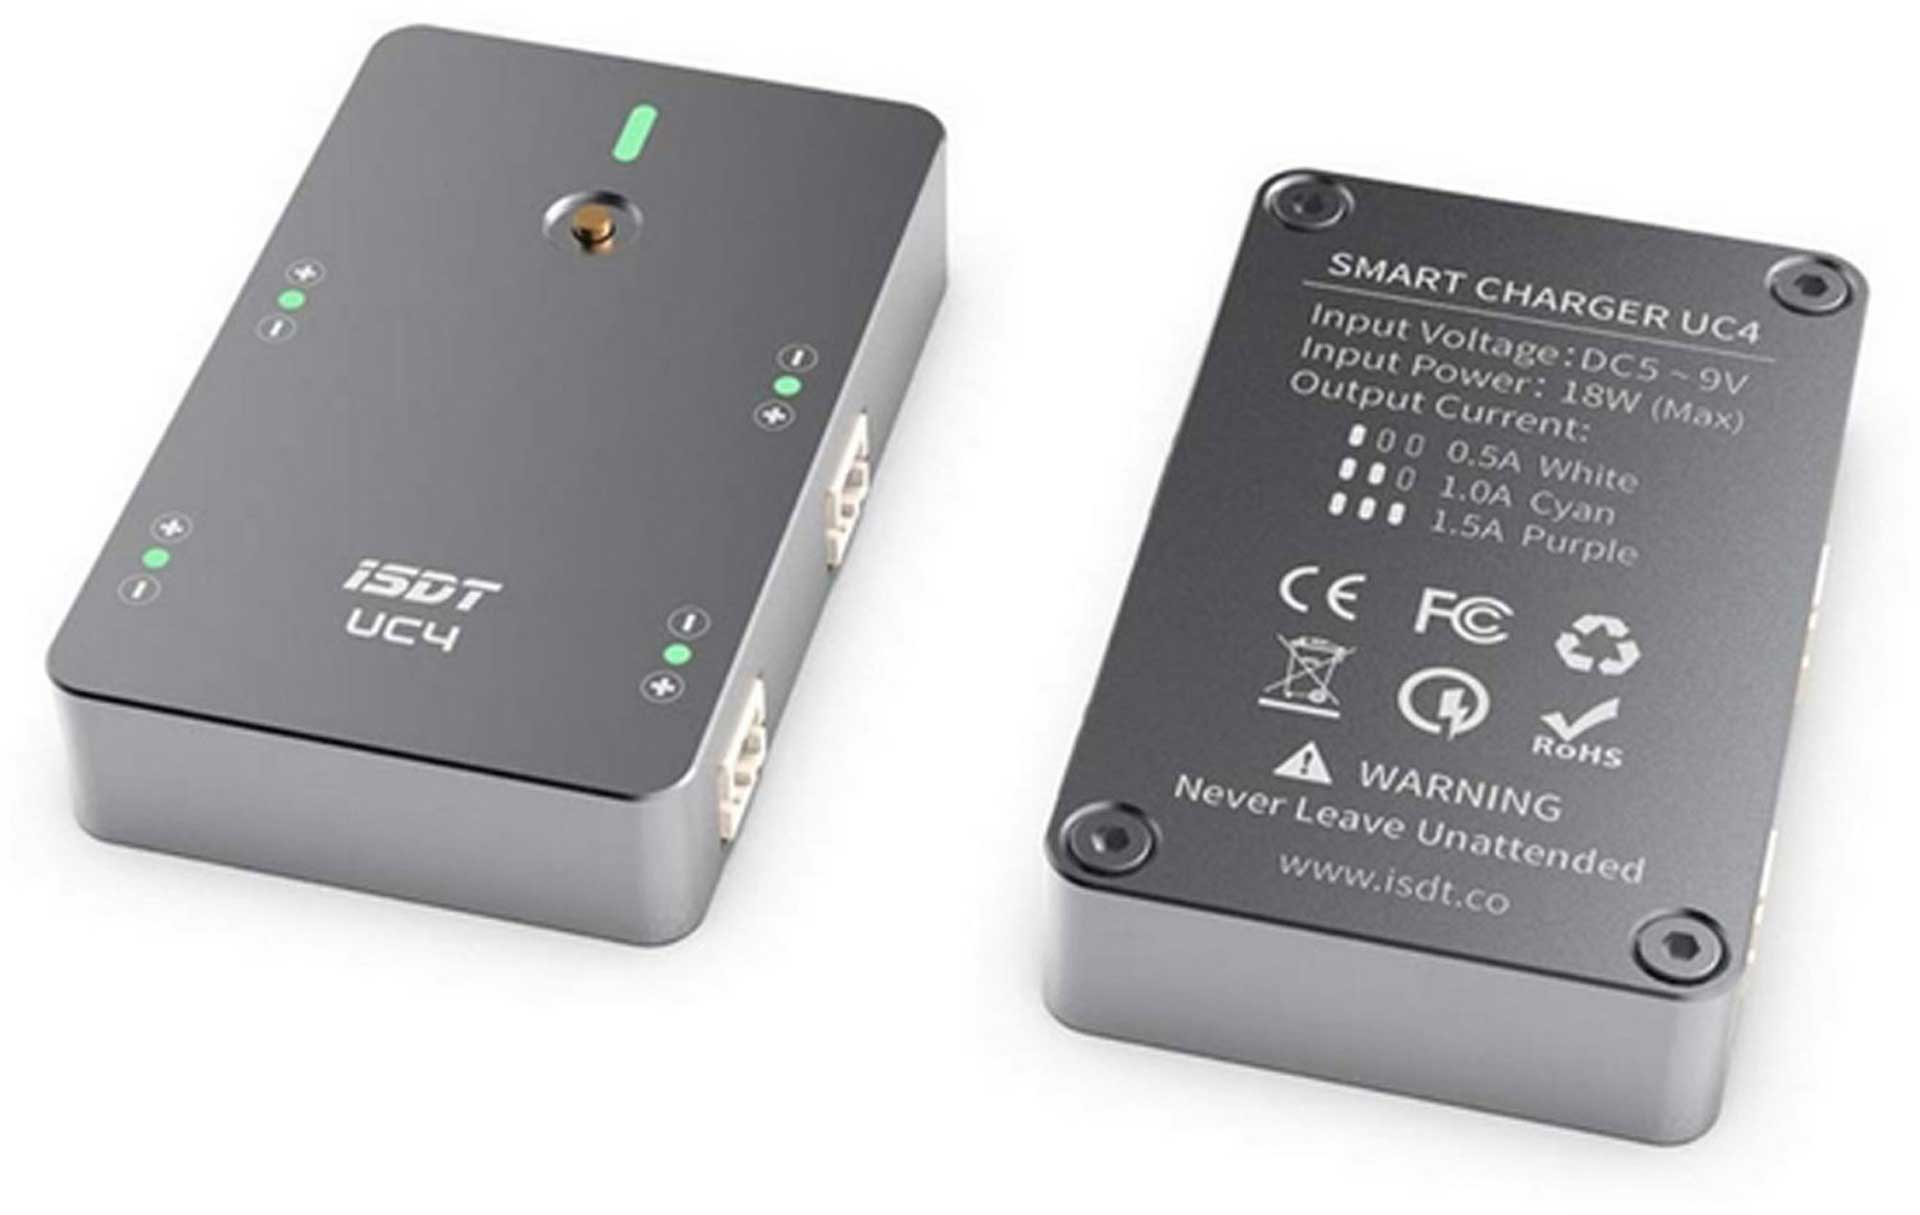 ISDT UC4 SMART CHARGER 4-WAY CHARGER FOR 1S LIPO WITH PH2.0 CONNECTOR SYSTEM